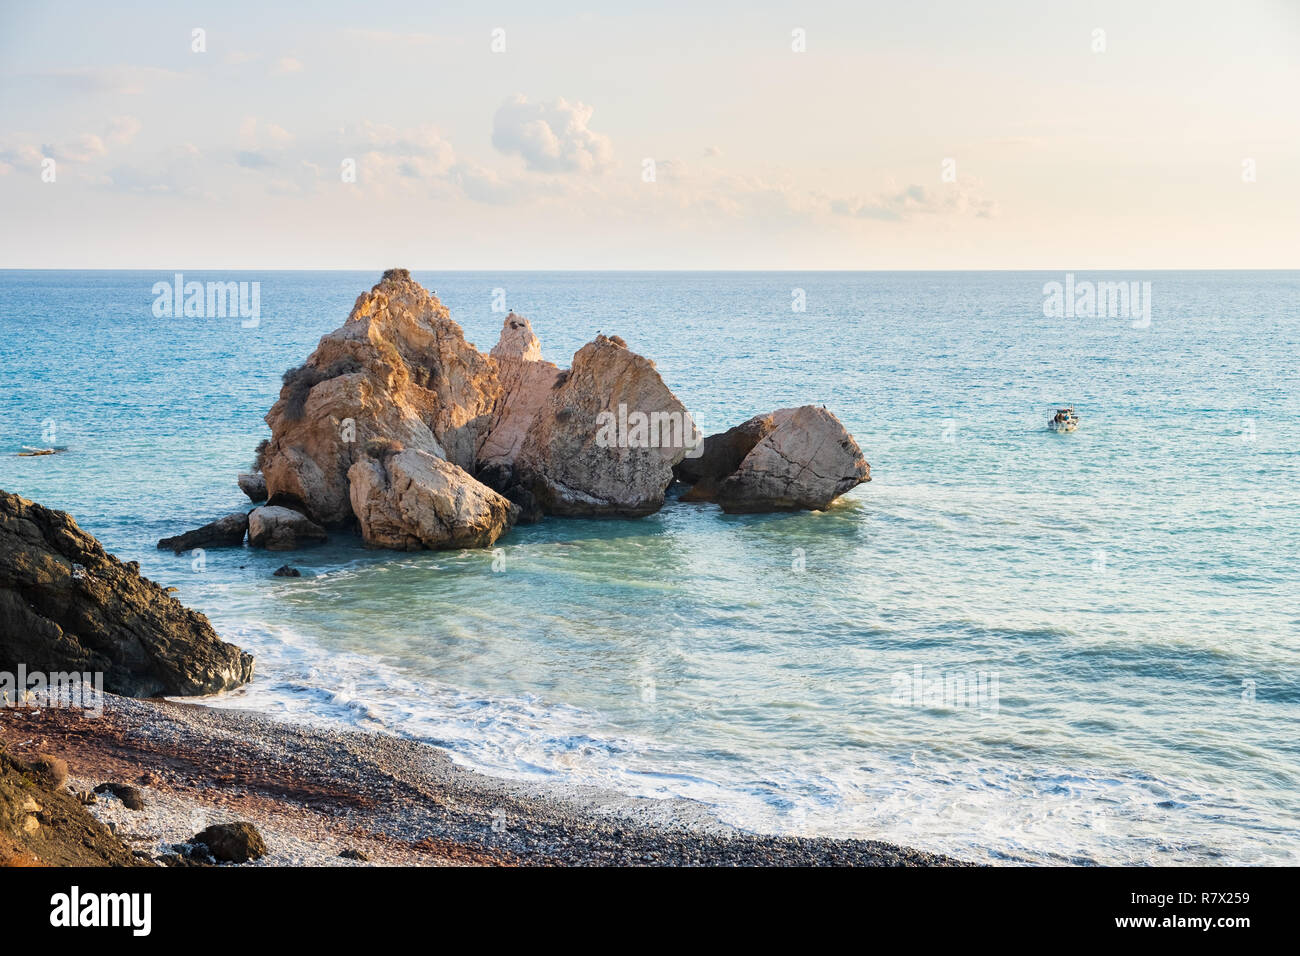 Afternoon view of the seascape around Petra tou Romiou, in Paphos, Cyprus, as a fishing boat passes by. It is considered to be Aphrodite's birthplace  Stock Photo